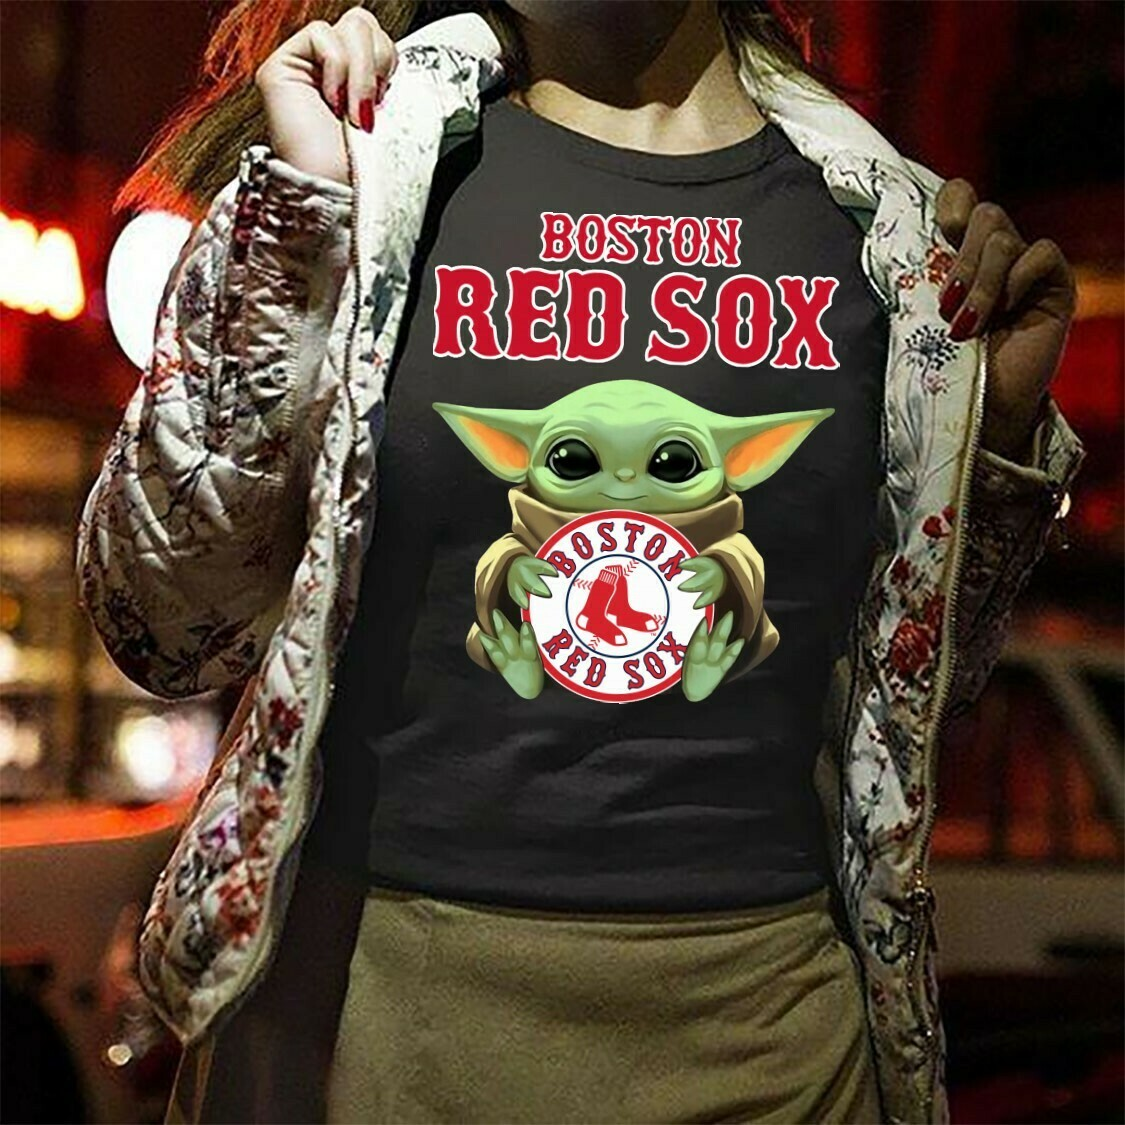 Boston Red Sox Baby Yoda,Star Wars Yoda fantasy Football team The Mandalorian The Child First Memories Floating Baseball Fan T-Shirt Long Sleeve Sweatshirt Hoodie Jolly Family Gifts